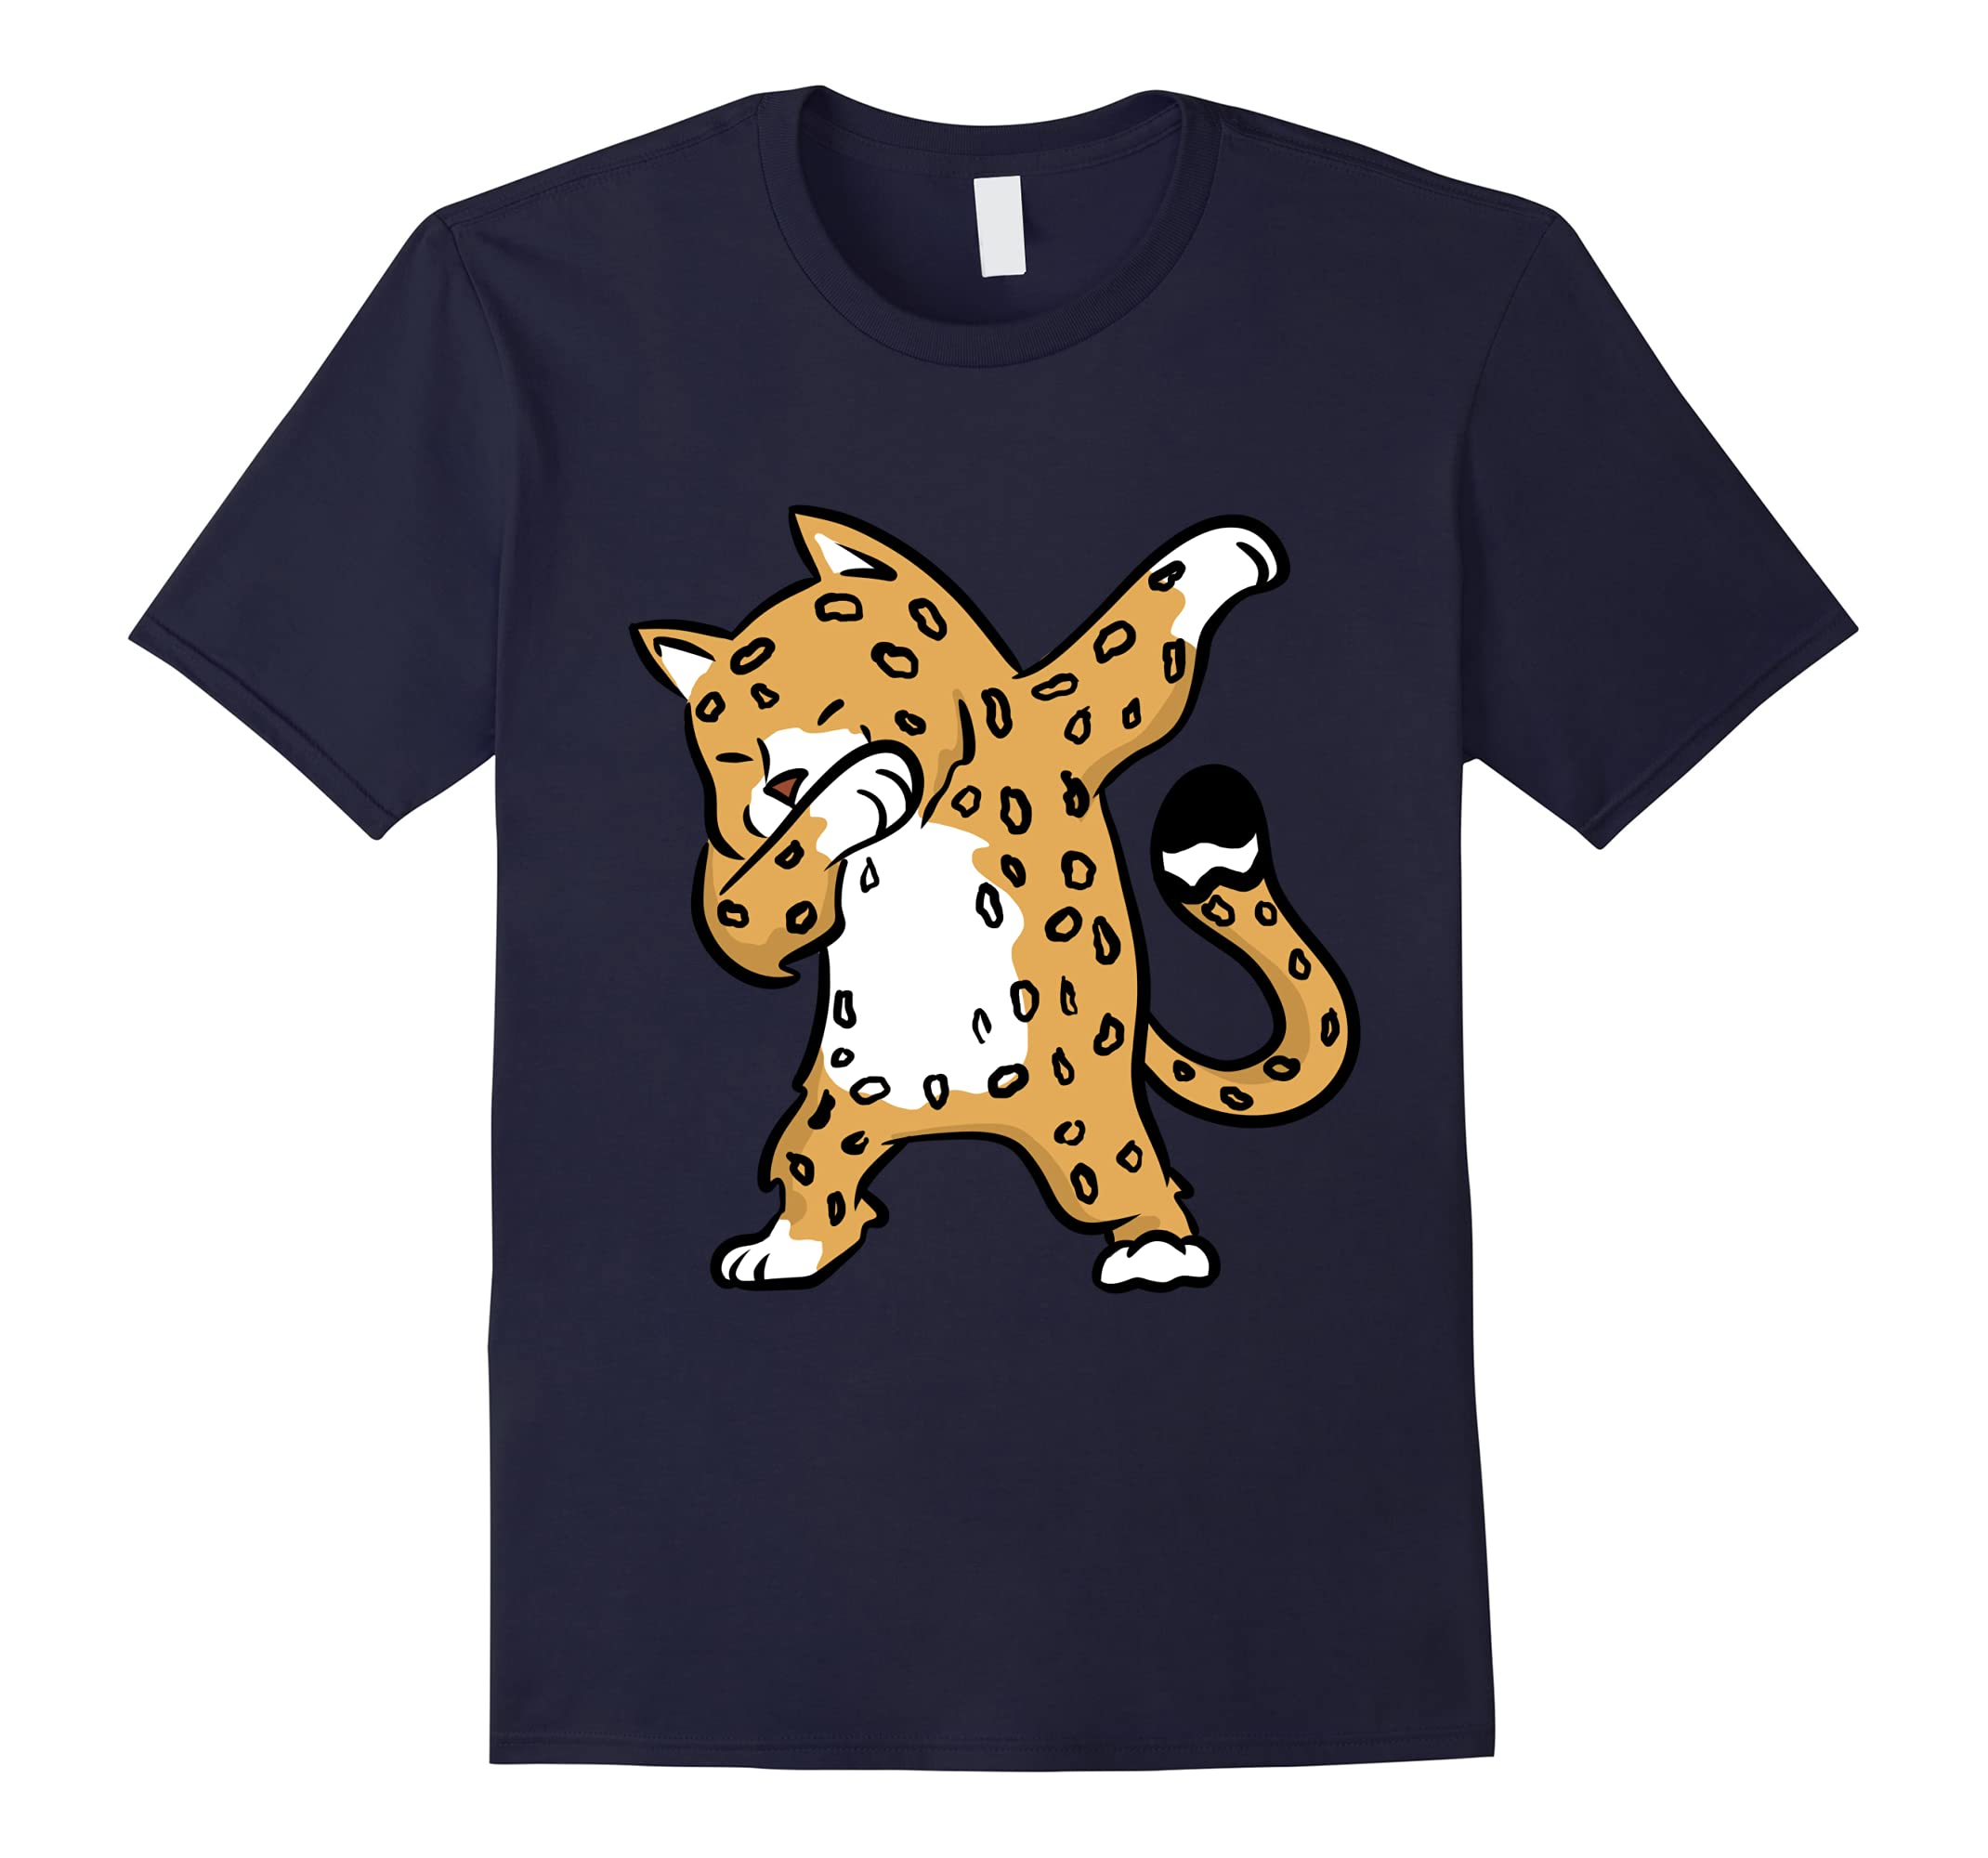 shirt sweaters and wear jaguar jersey ready shirts en embroidery crystal man image cotton to dk with t of